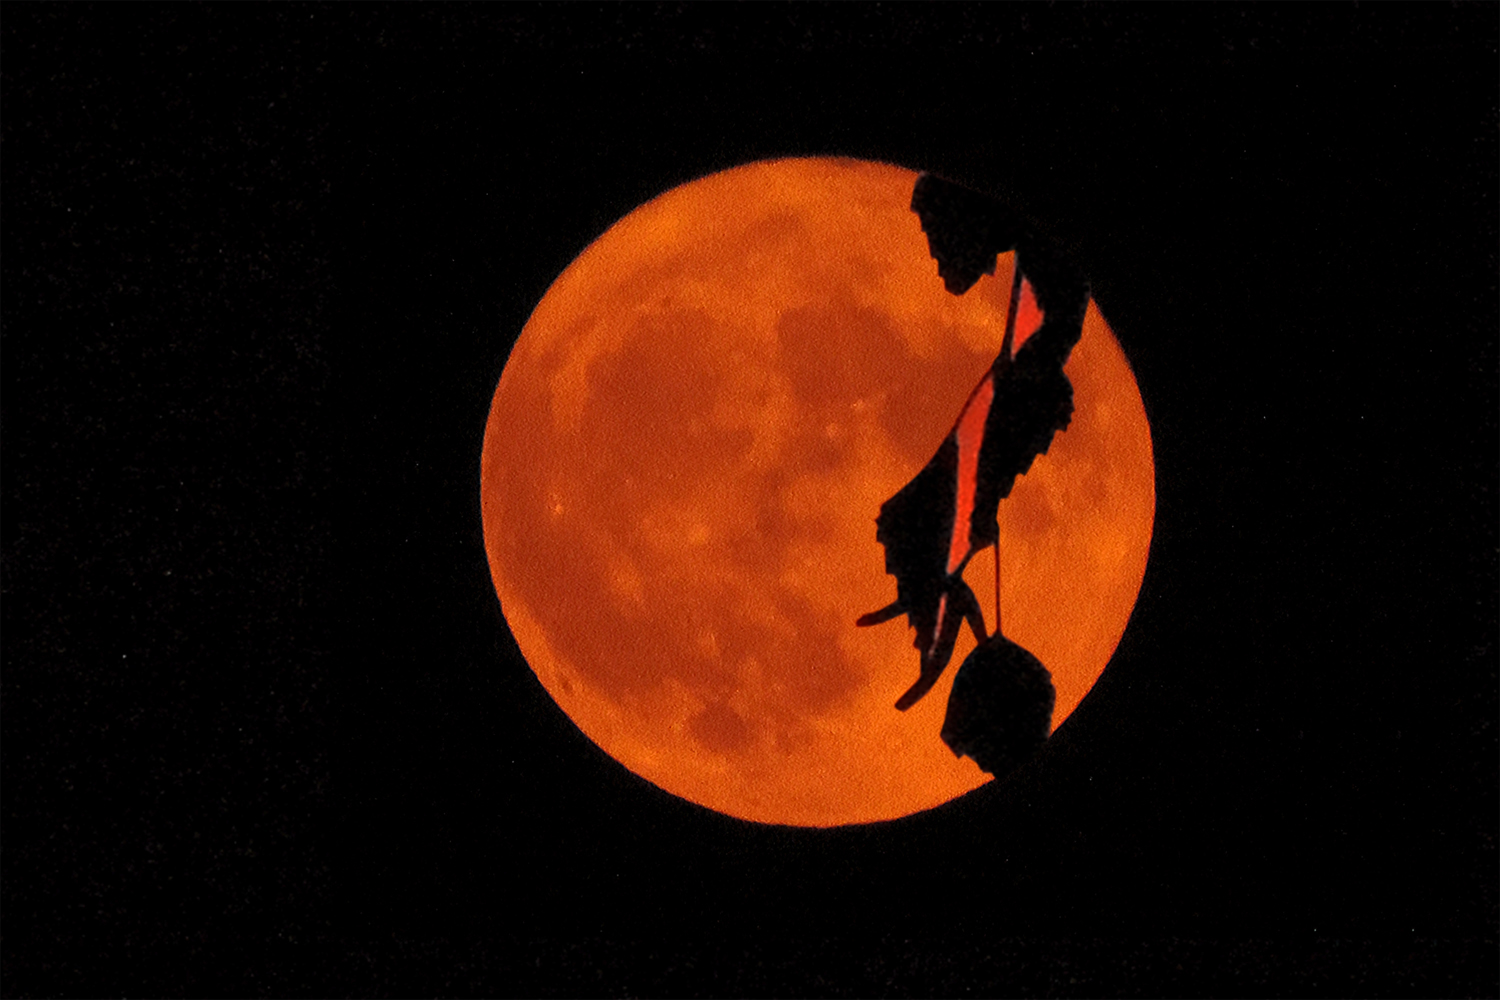 A red moon on a black sky is slightly obscured by the silhouette of dangling leaves.